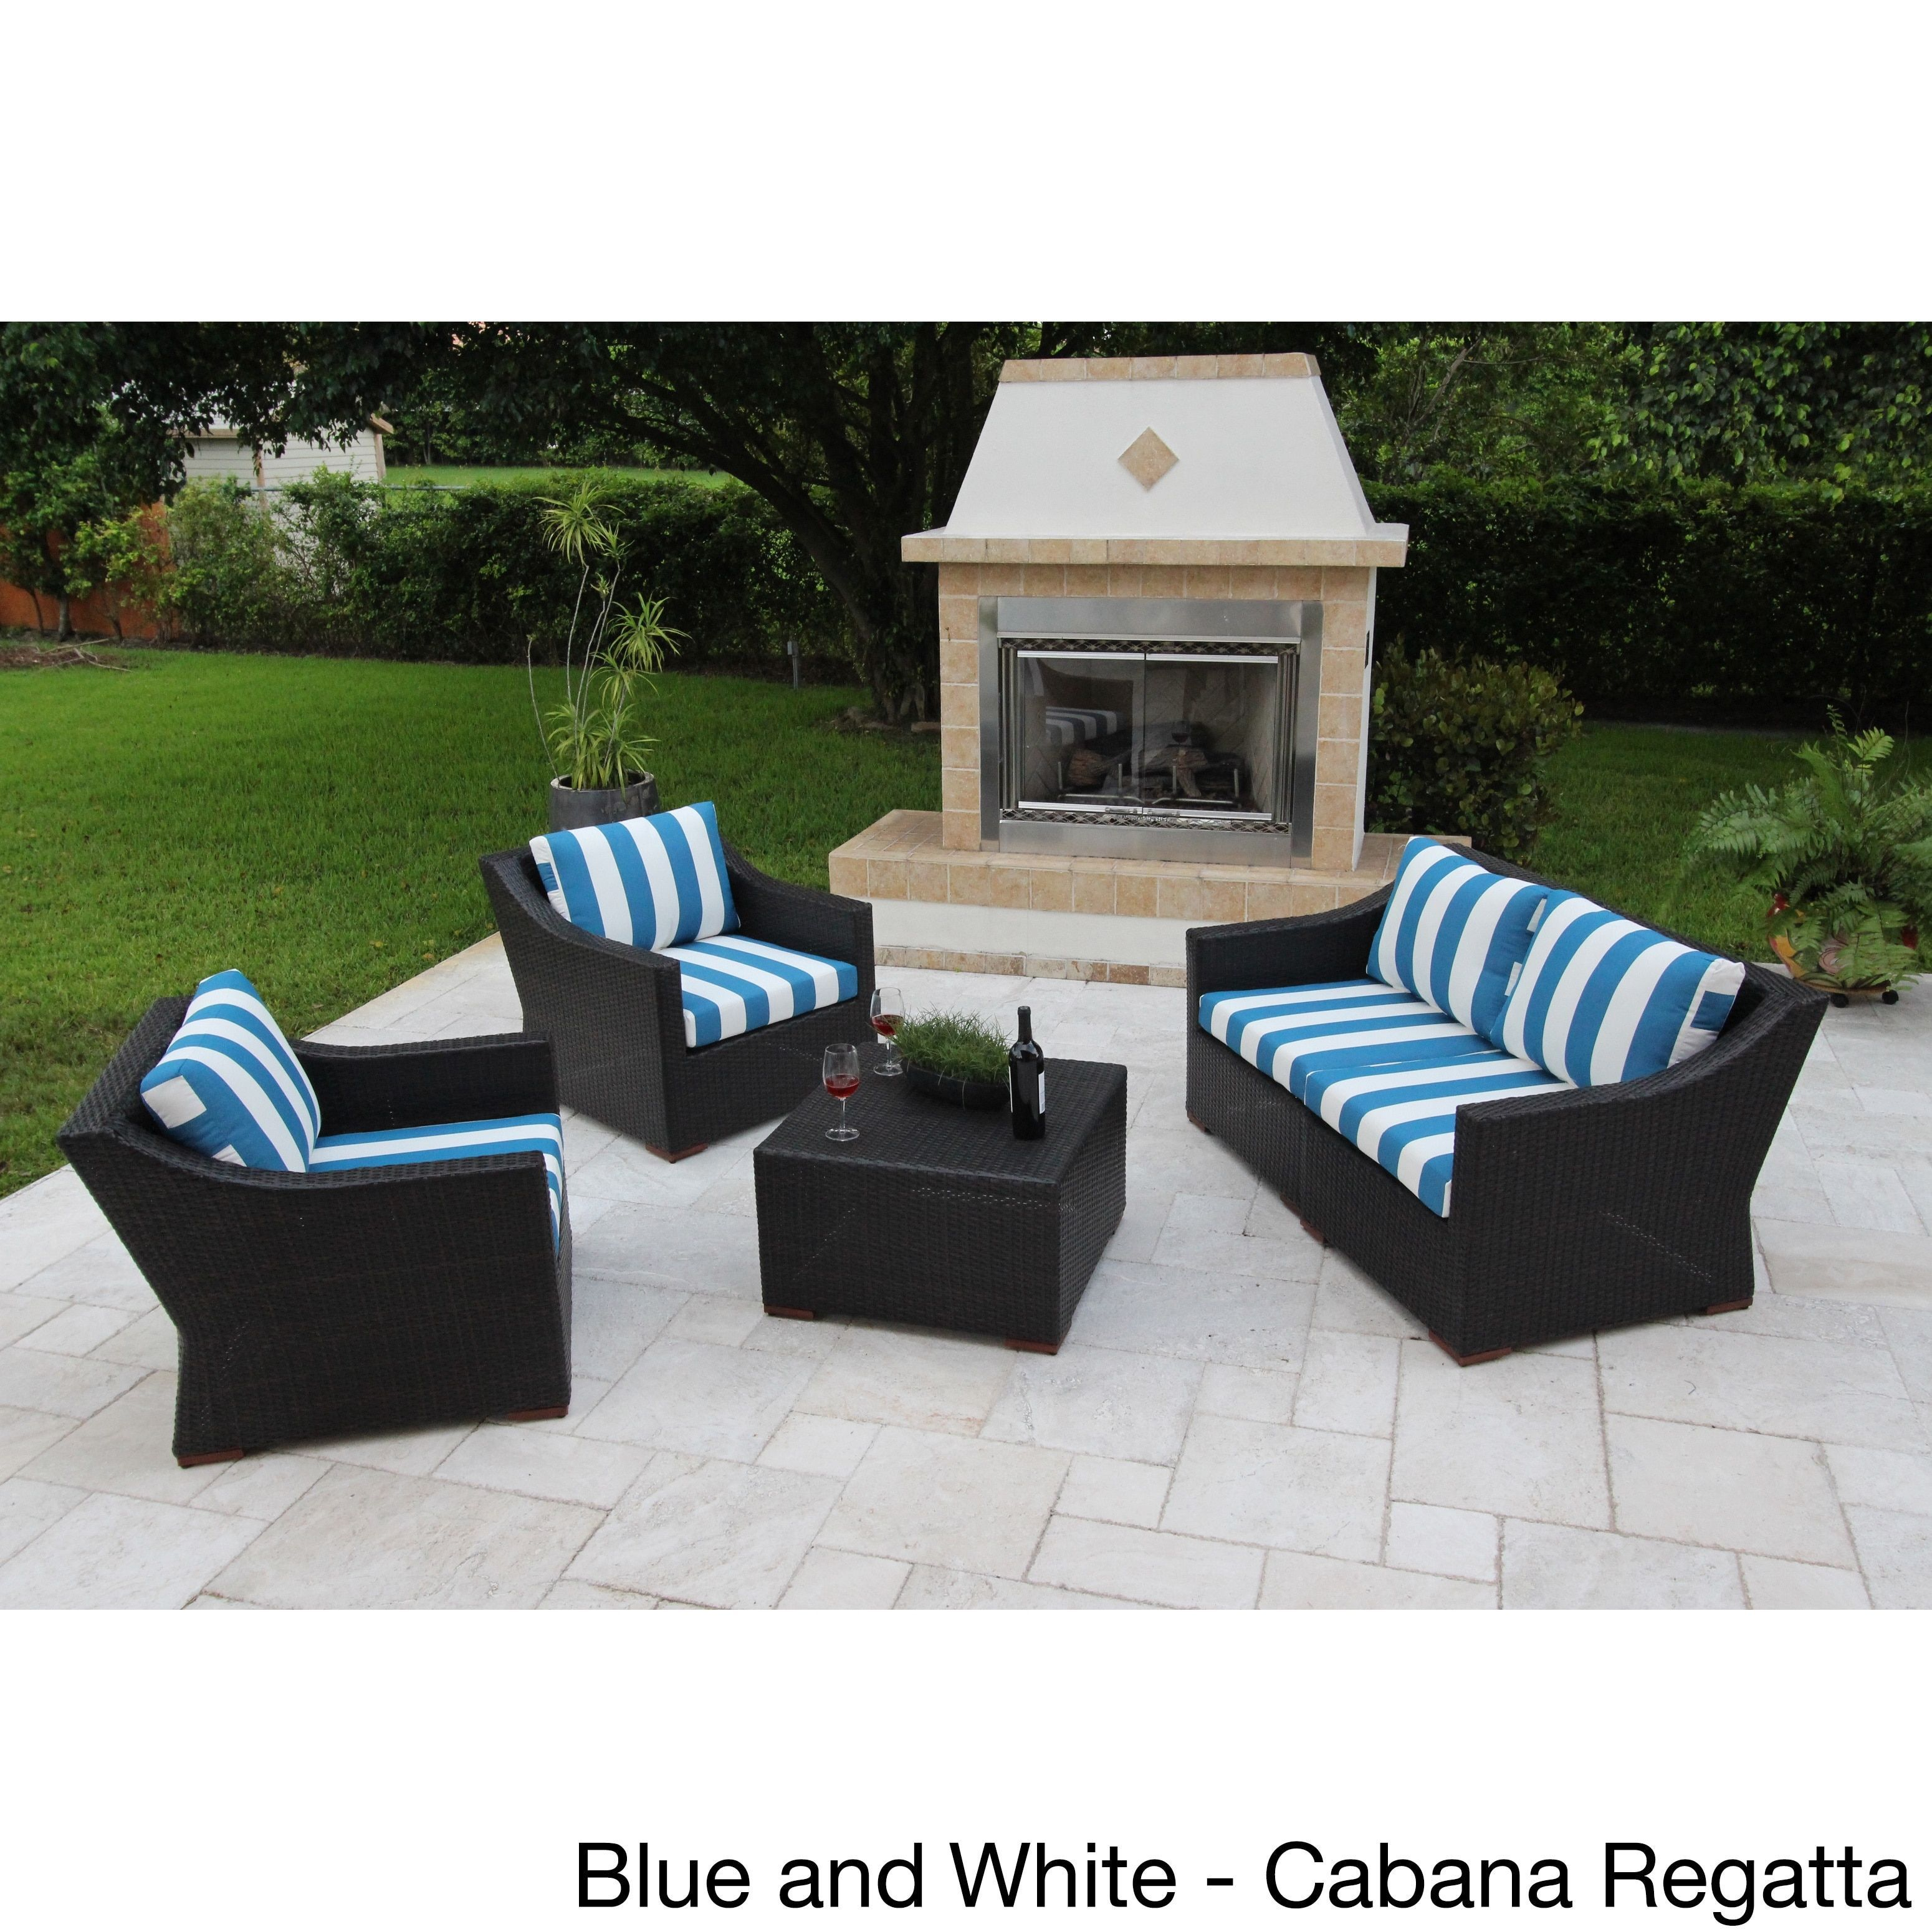 Anne 5 piece deep seating sofa set with sunbrella fabric blue and white cabana regatta brown size 5 piece sets patio furniture